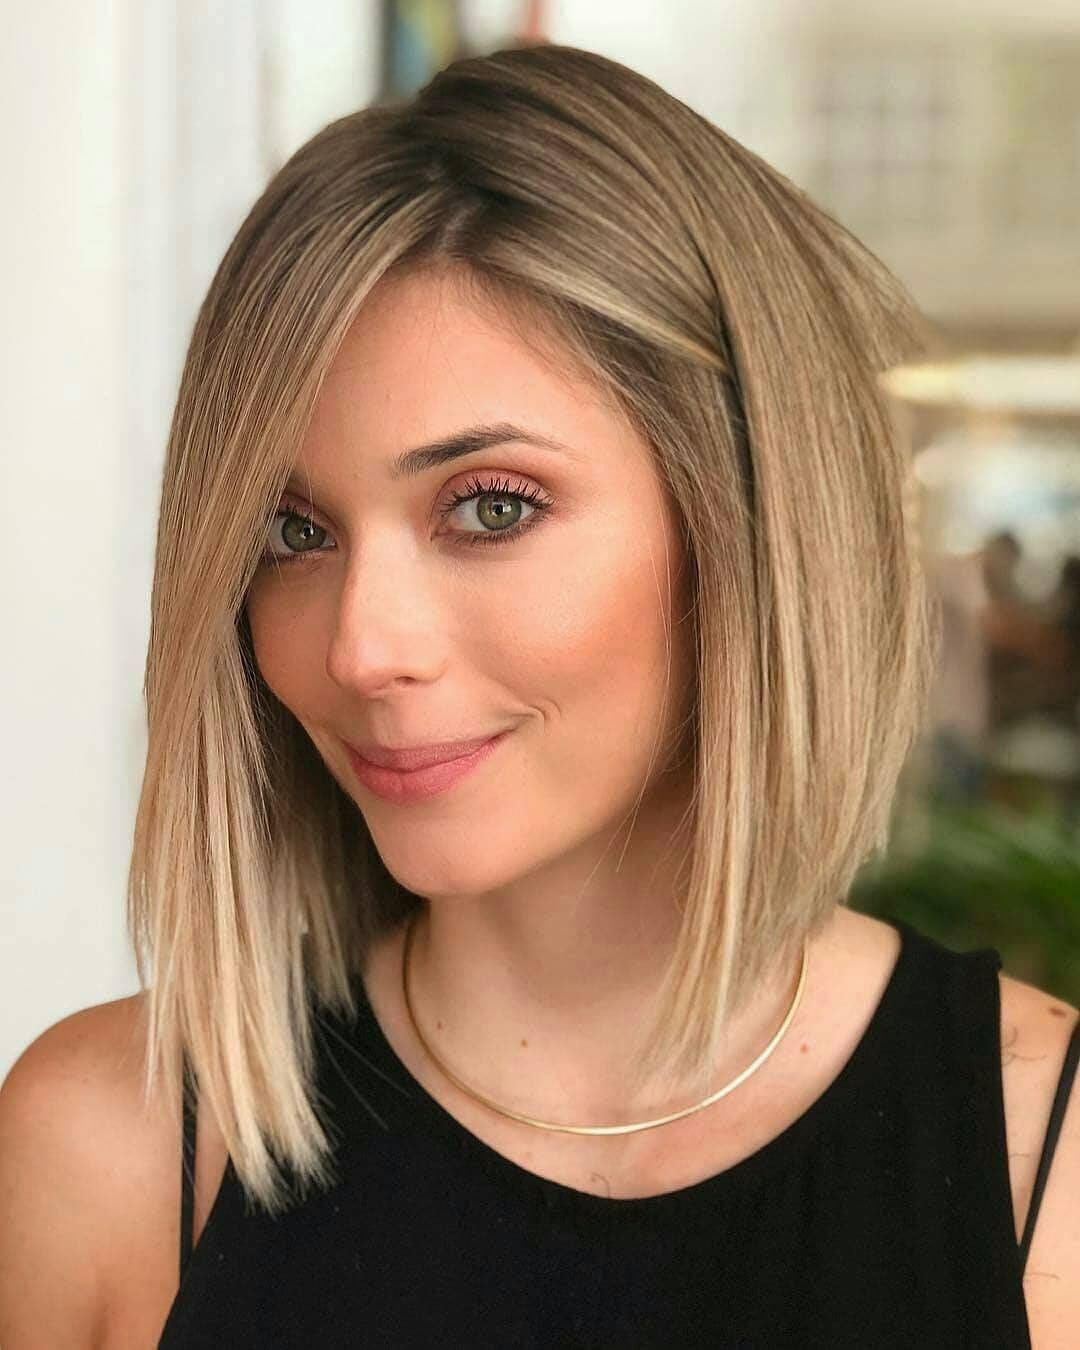 Chic and Stylish Straight Bob Hairstyle Ideas - Bob Hair Colors To Look Special